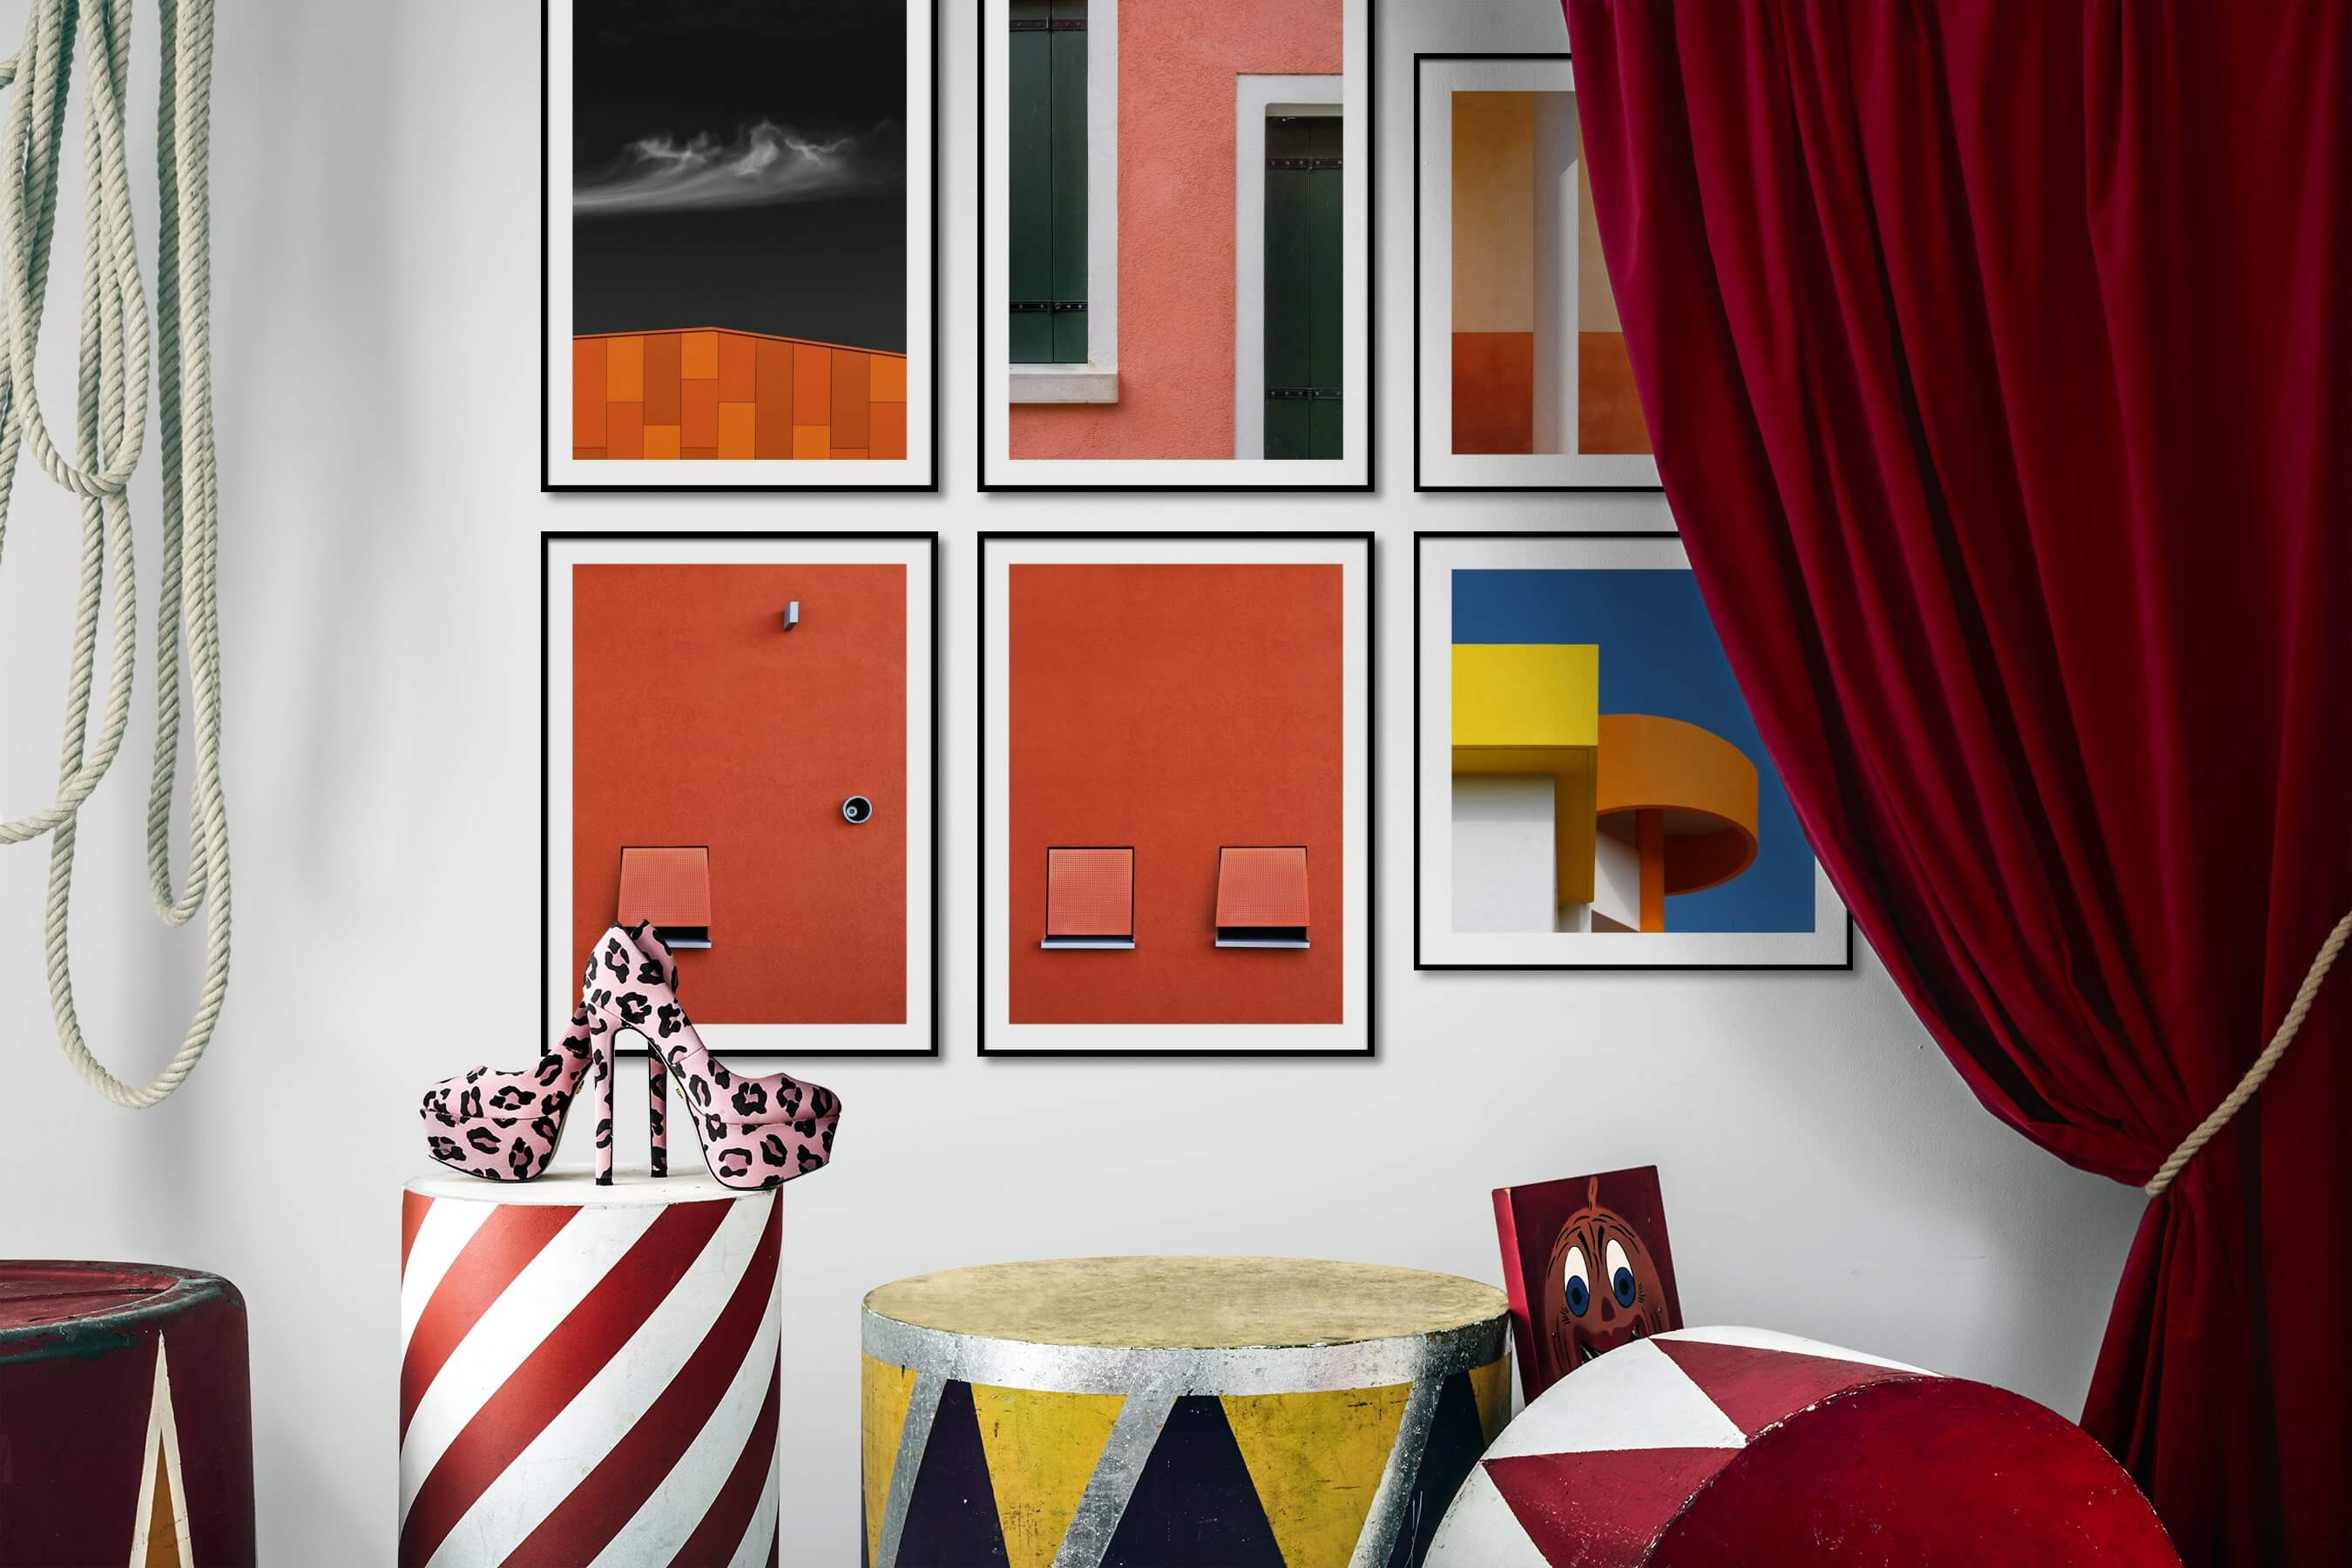 Gallery wall idea with six framed pictures arranged on a wall depicting For the Minimalist, For the Moderate, and City Life